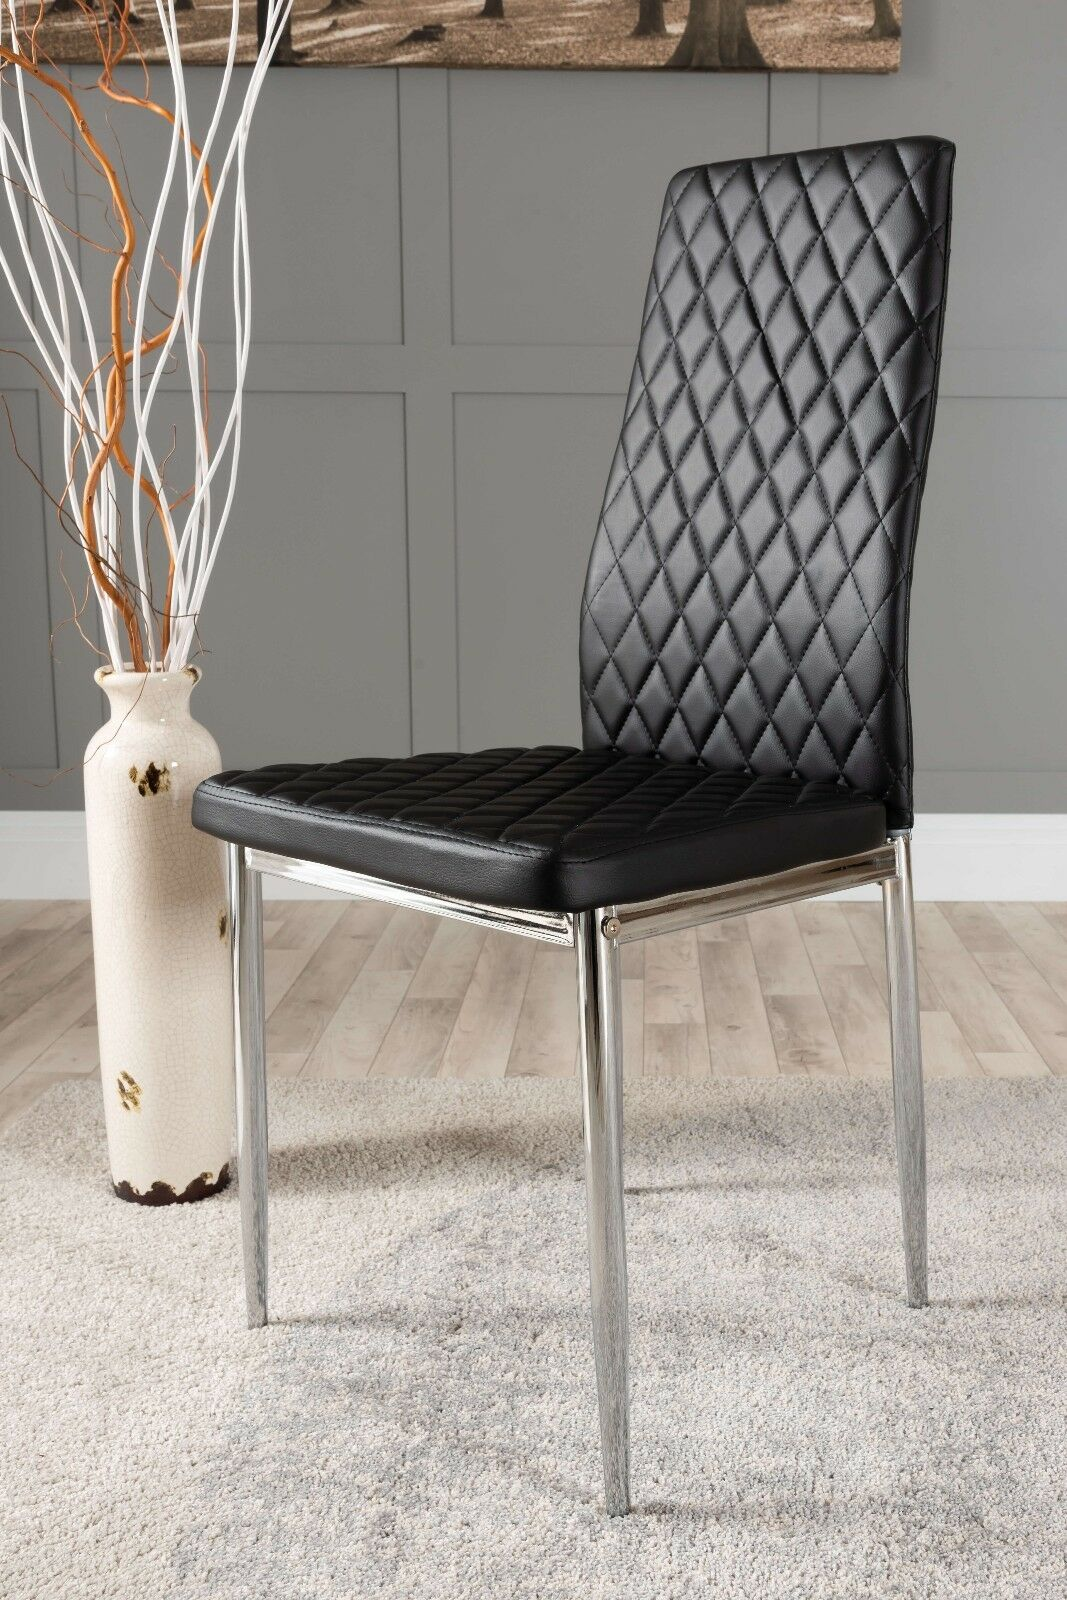 Details About 4x Milan Chrome Hatched Black Faux Leather Dining Chairs Metal Legs Foam